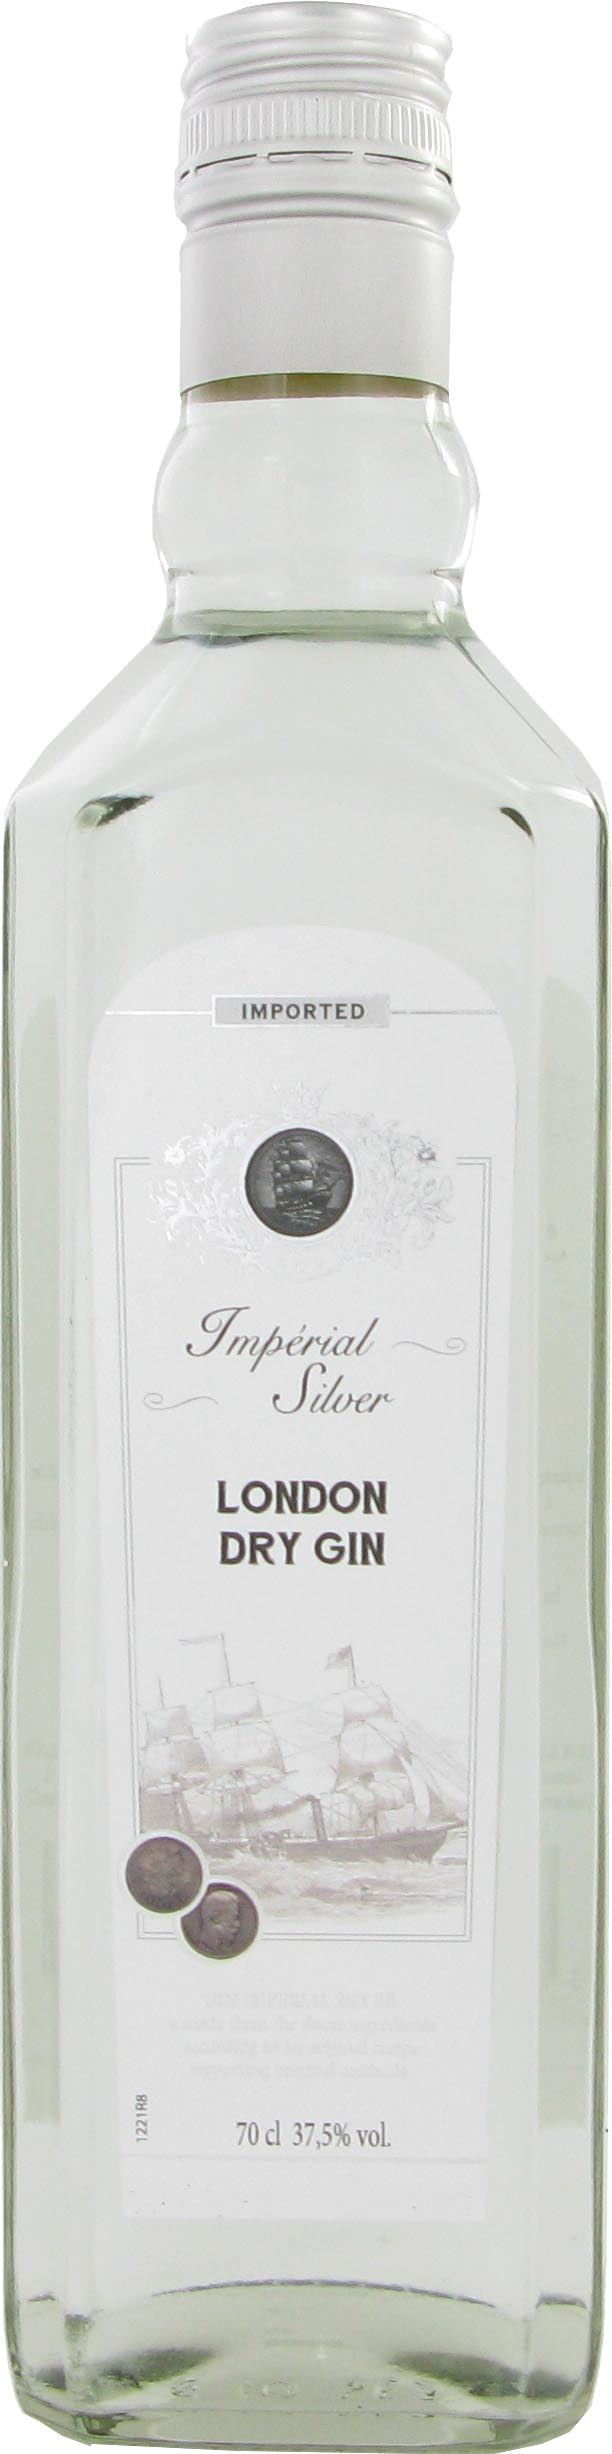 GIN IMPERIAL SILVER 70 CL 37,5